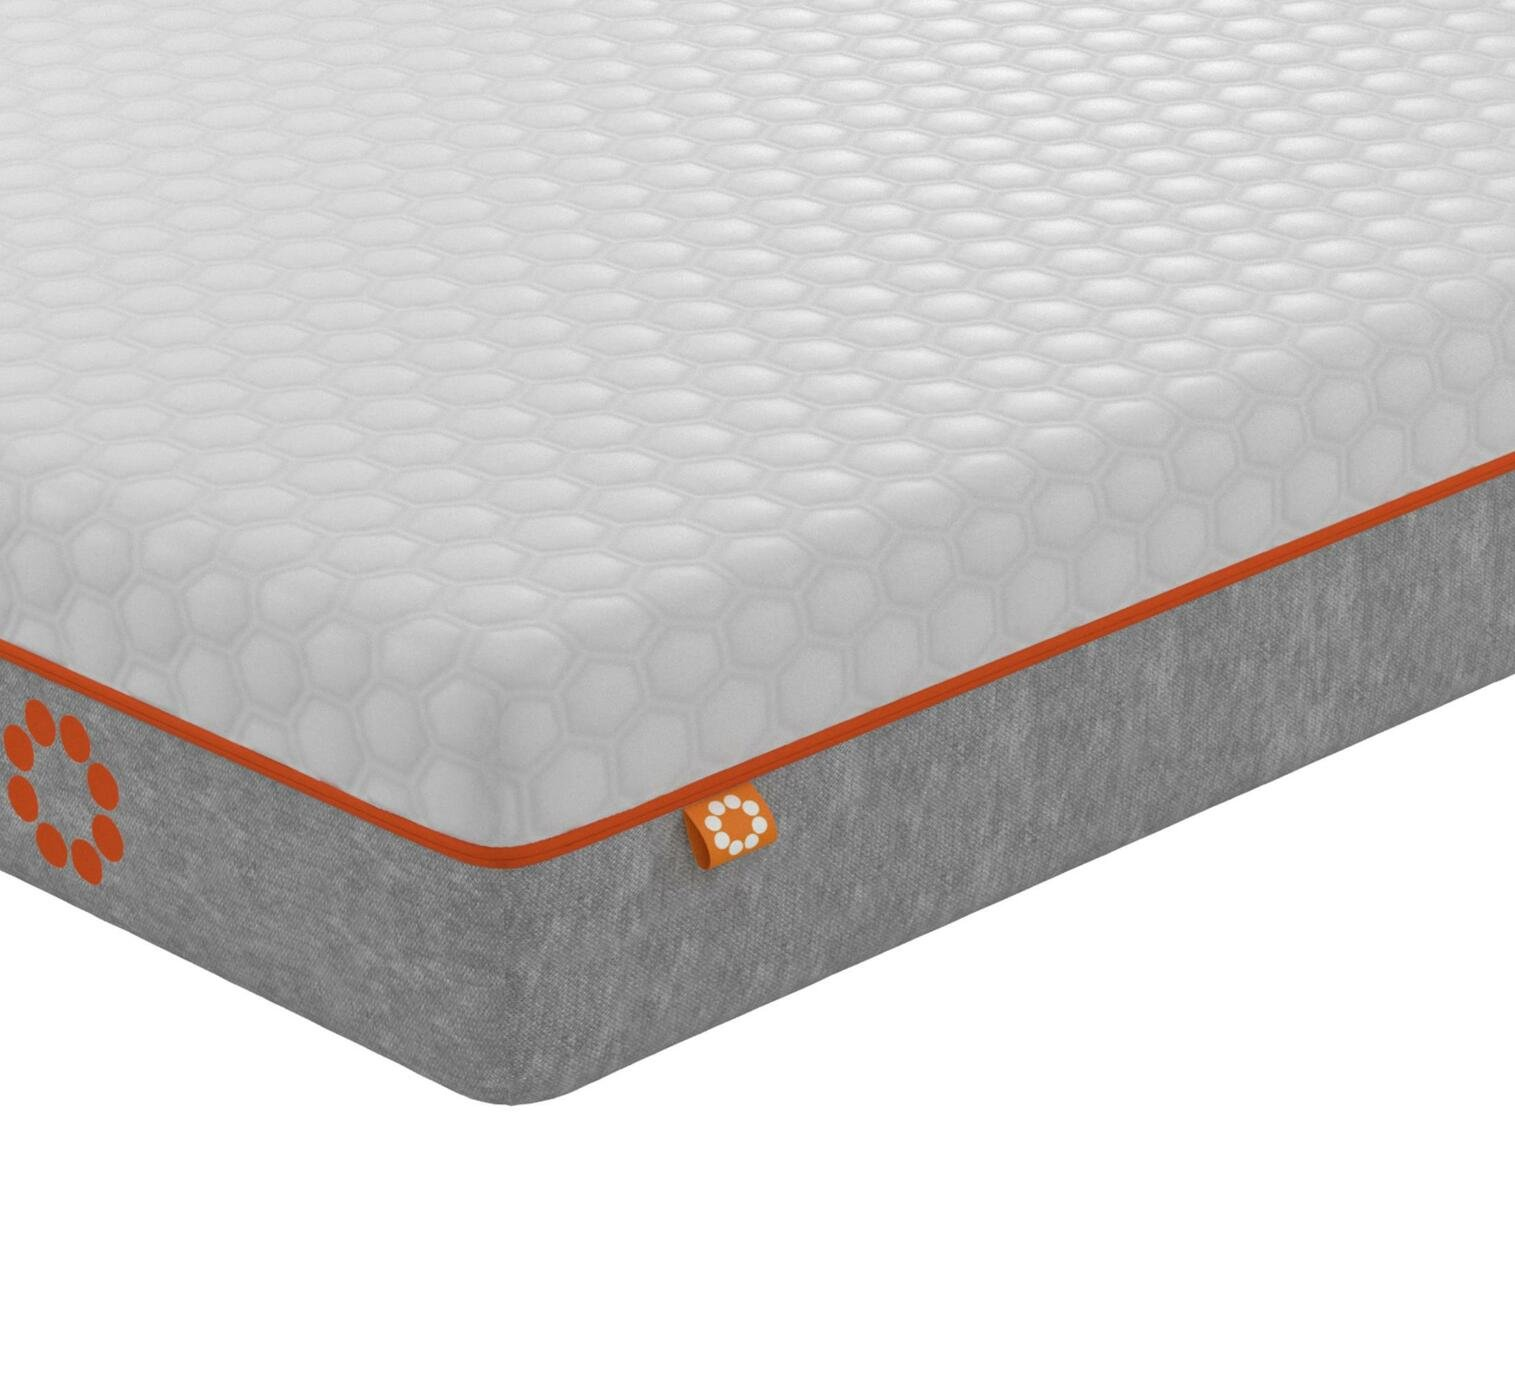 Dormeo Octasmart Hybrid Single Mattress